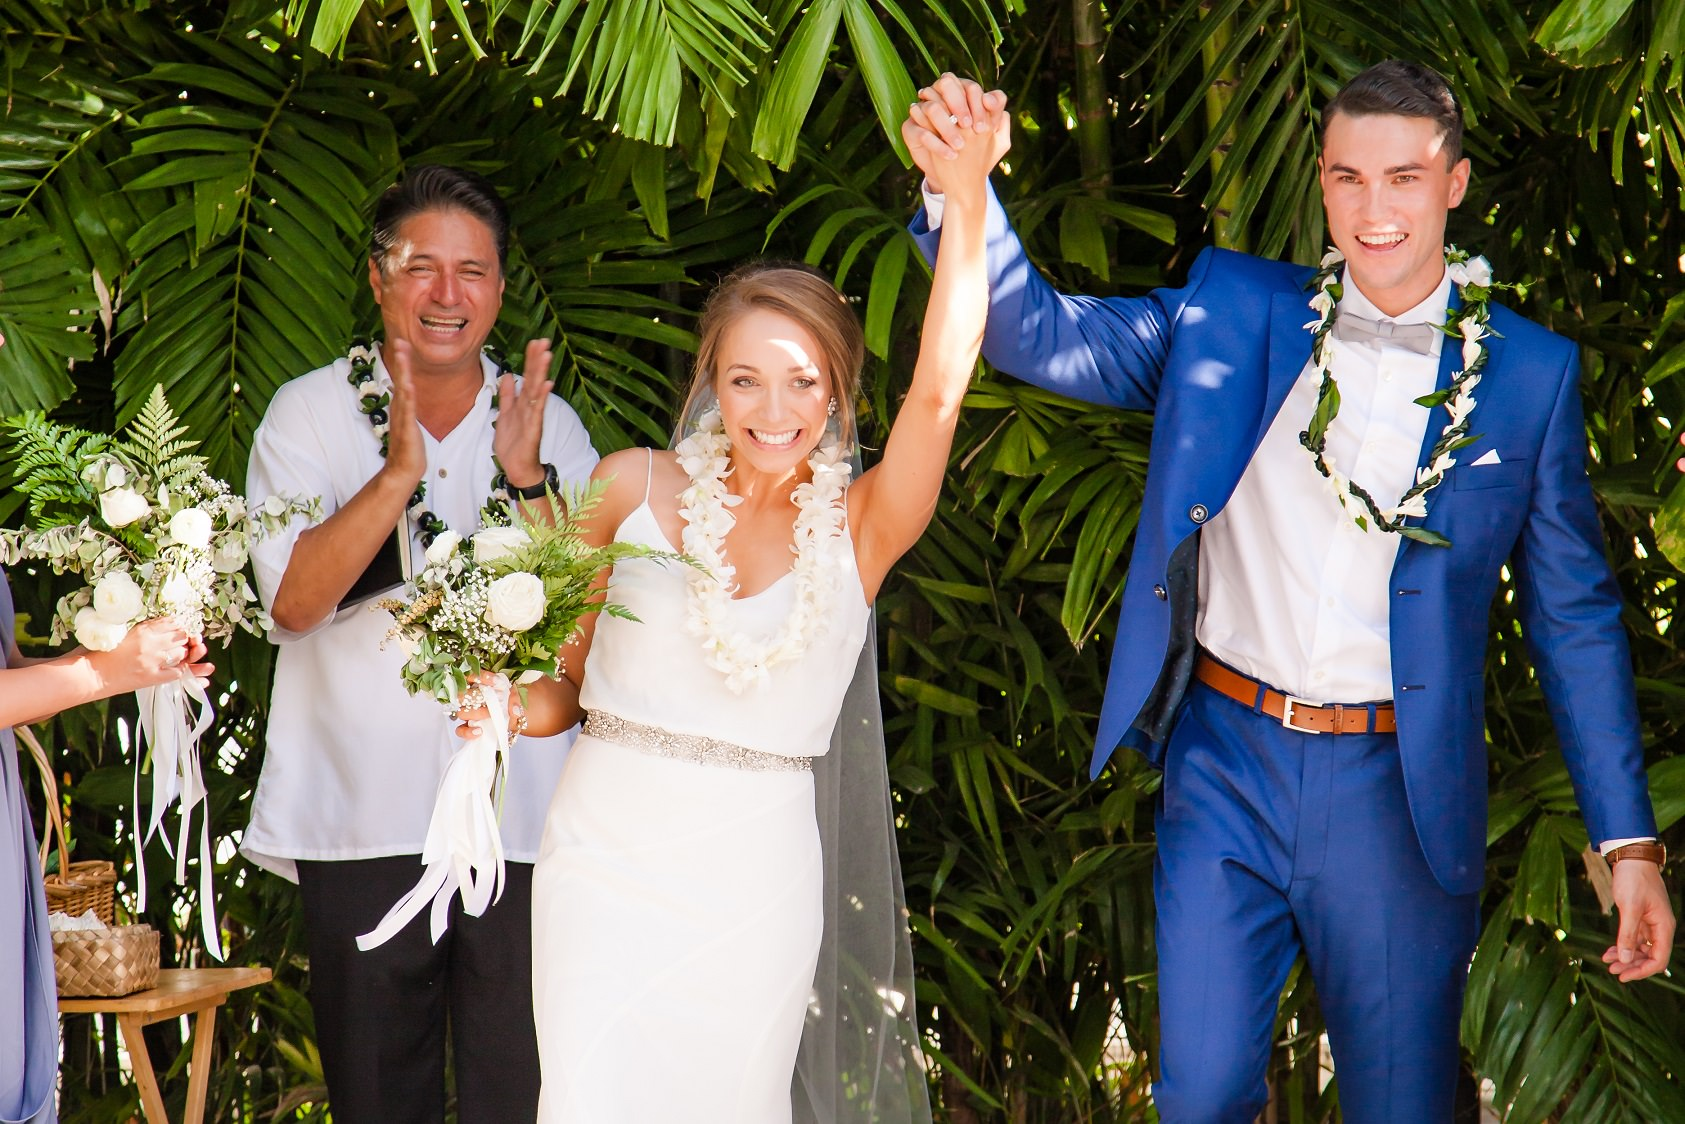 Just Married! Wedding ceremony at The Modern Hotel in Waikiki